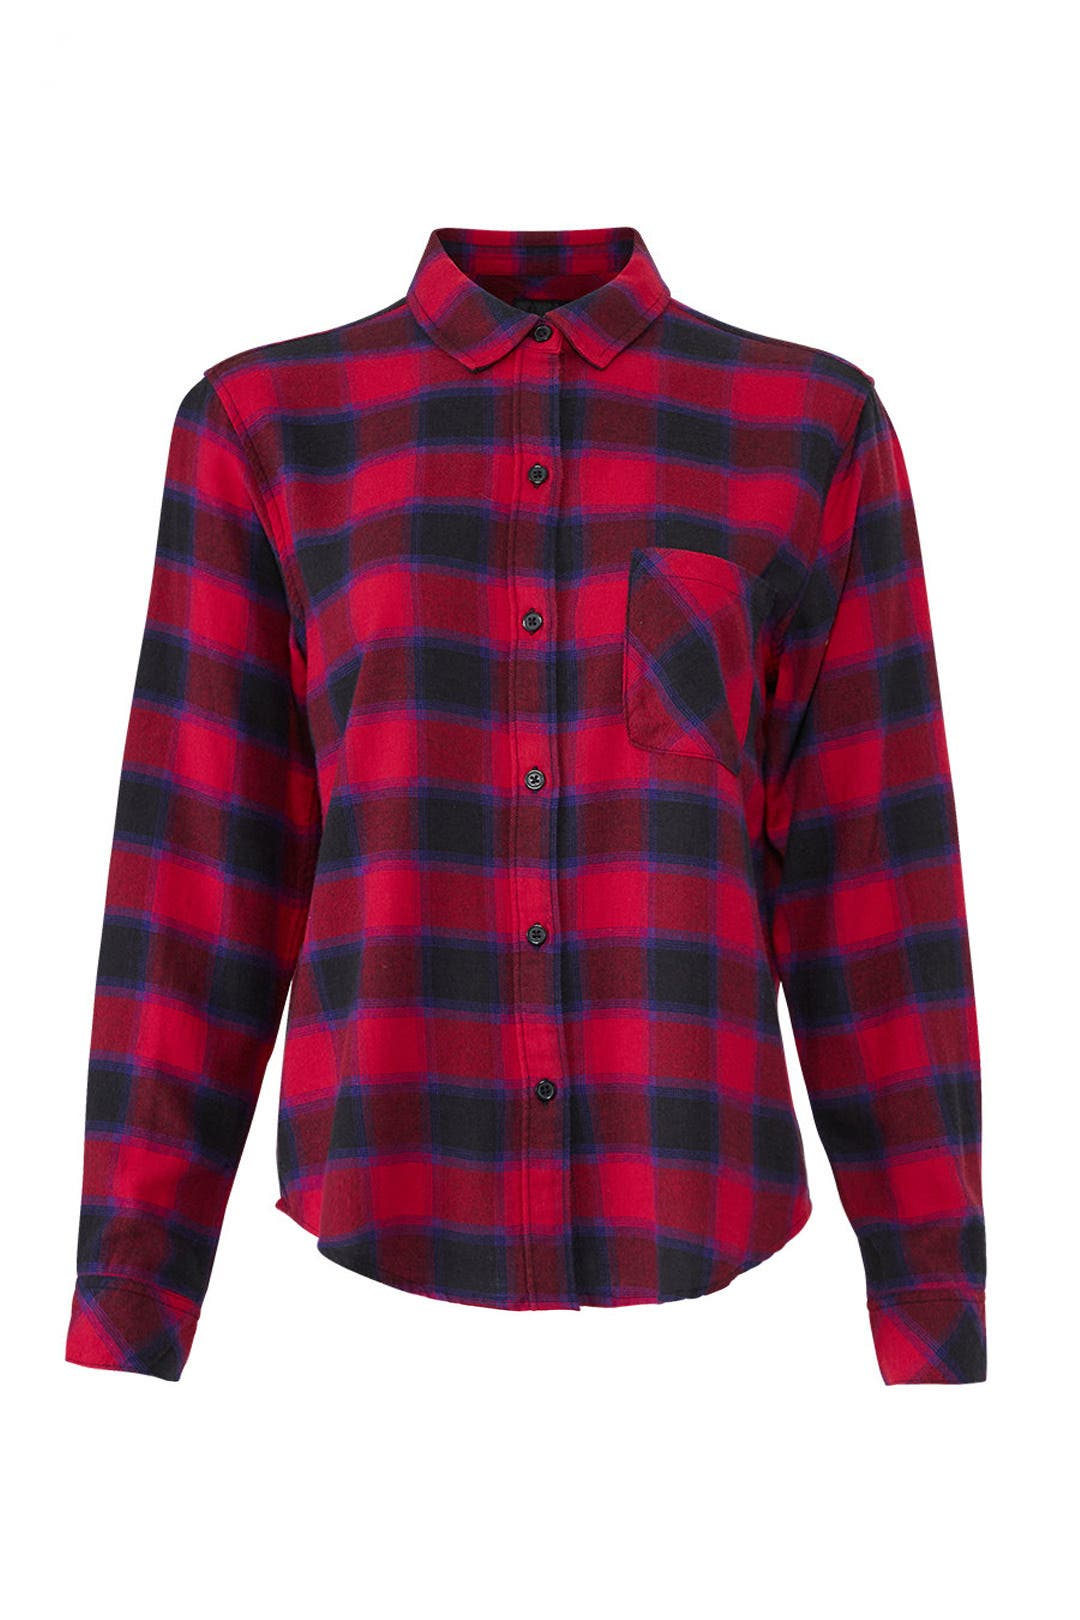 0e9fda75a8afd Milo Plaid Button Down by Rails for $30 | Rent the Runway